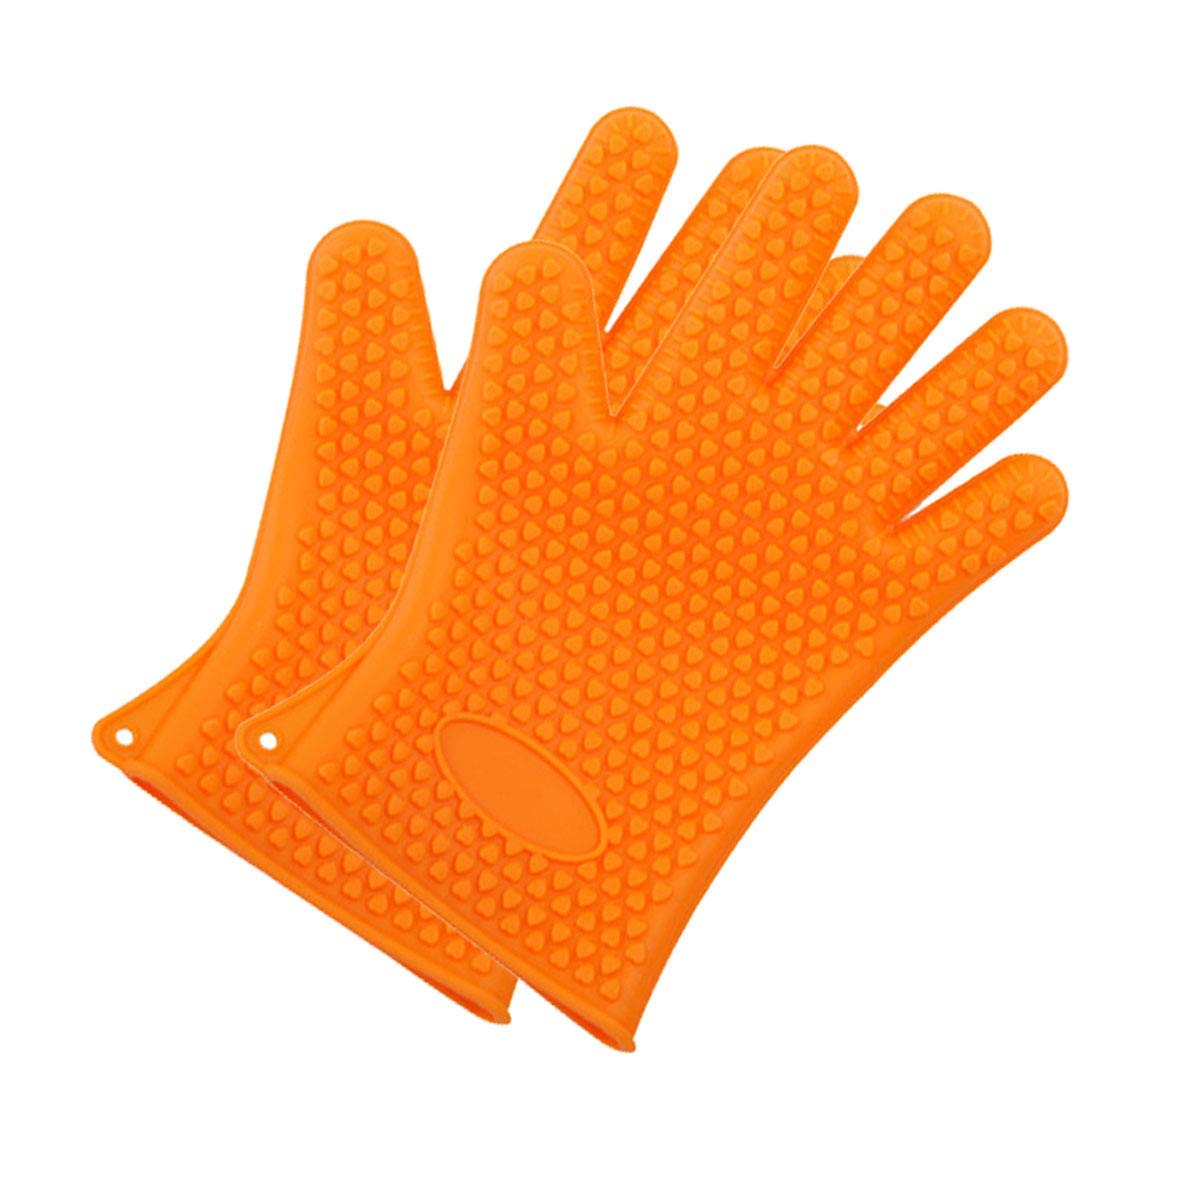 ANPI Silicone Gloves, Heat Resistant Gloves for Cooking Grilling BBQ Baking, Full Finger Durable Hands Protection (Orange)